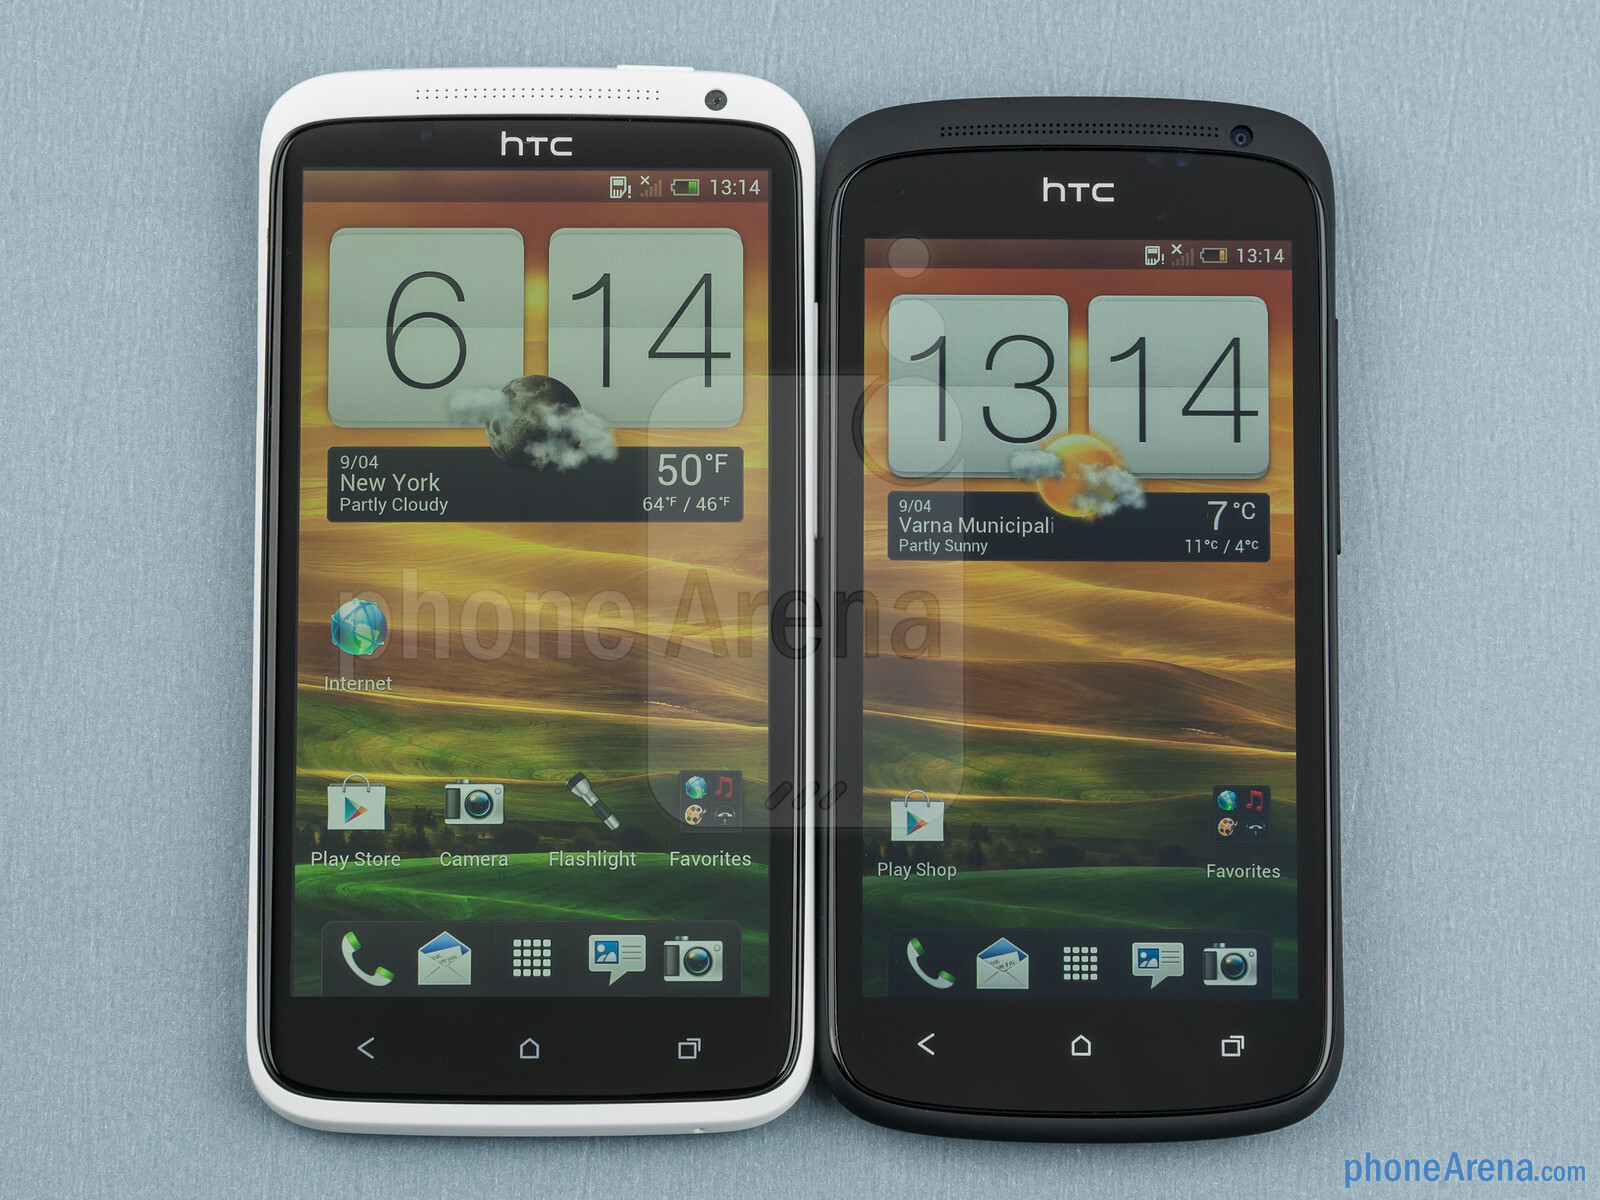 HTC One X vs HTC One S - Performance and Conclusion